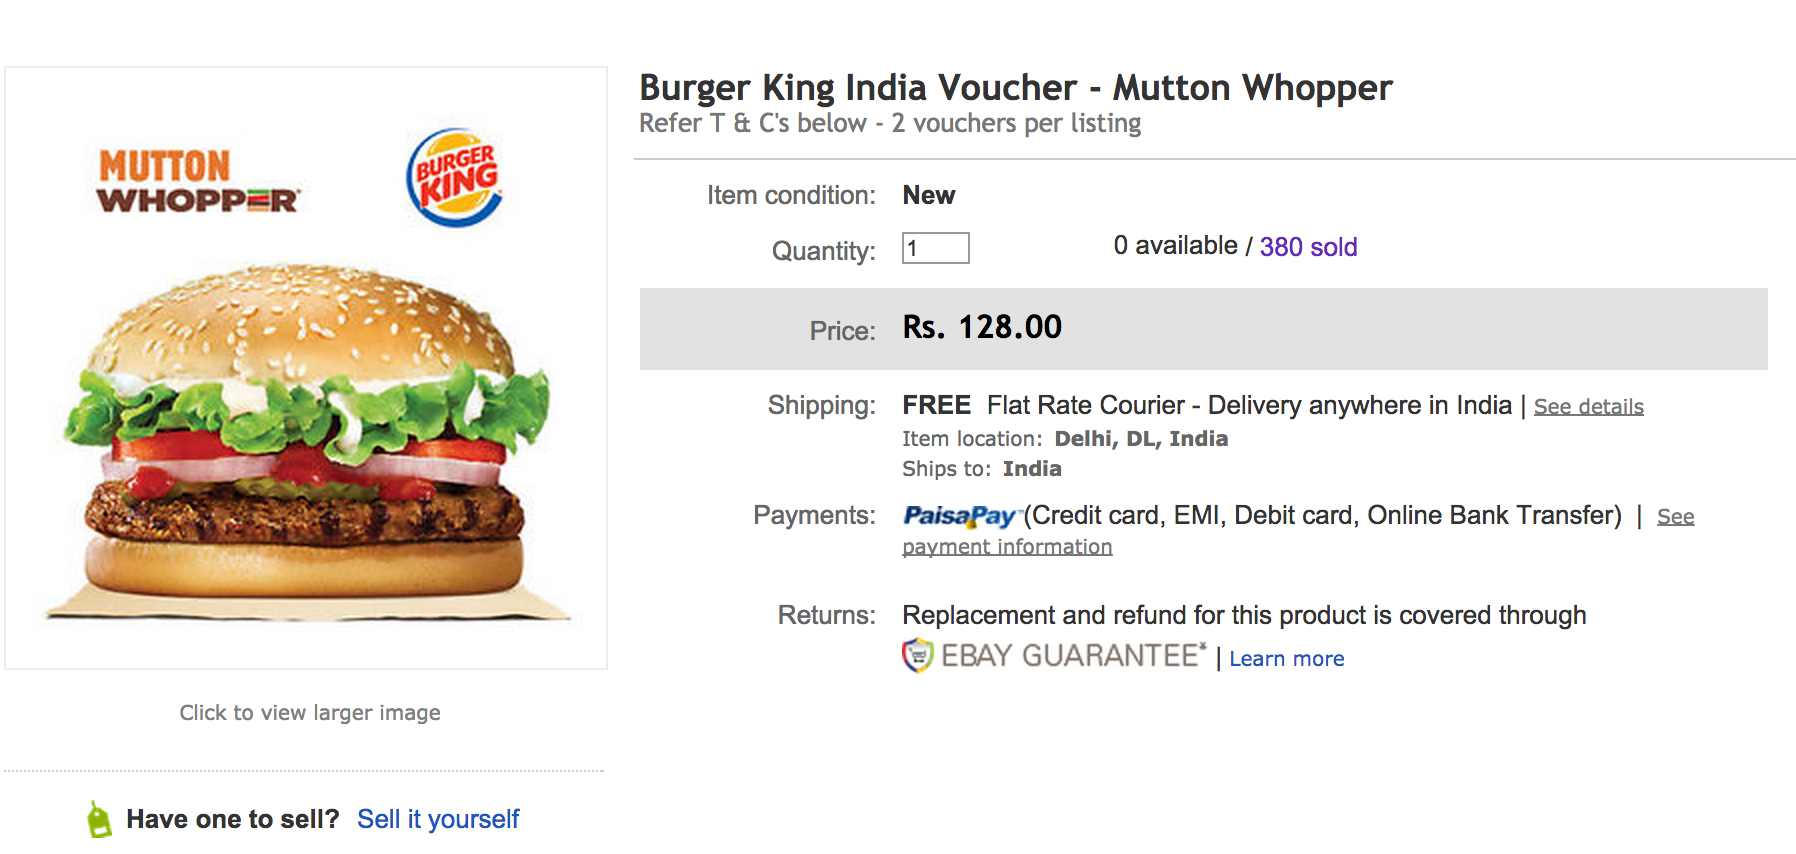 The eBay India listing for the Mutton Whopper. BK India sold 380 vouchers in advance of this coming Sunday's opening in New Delhi.